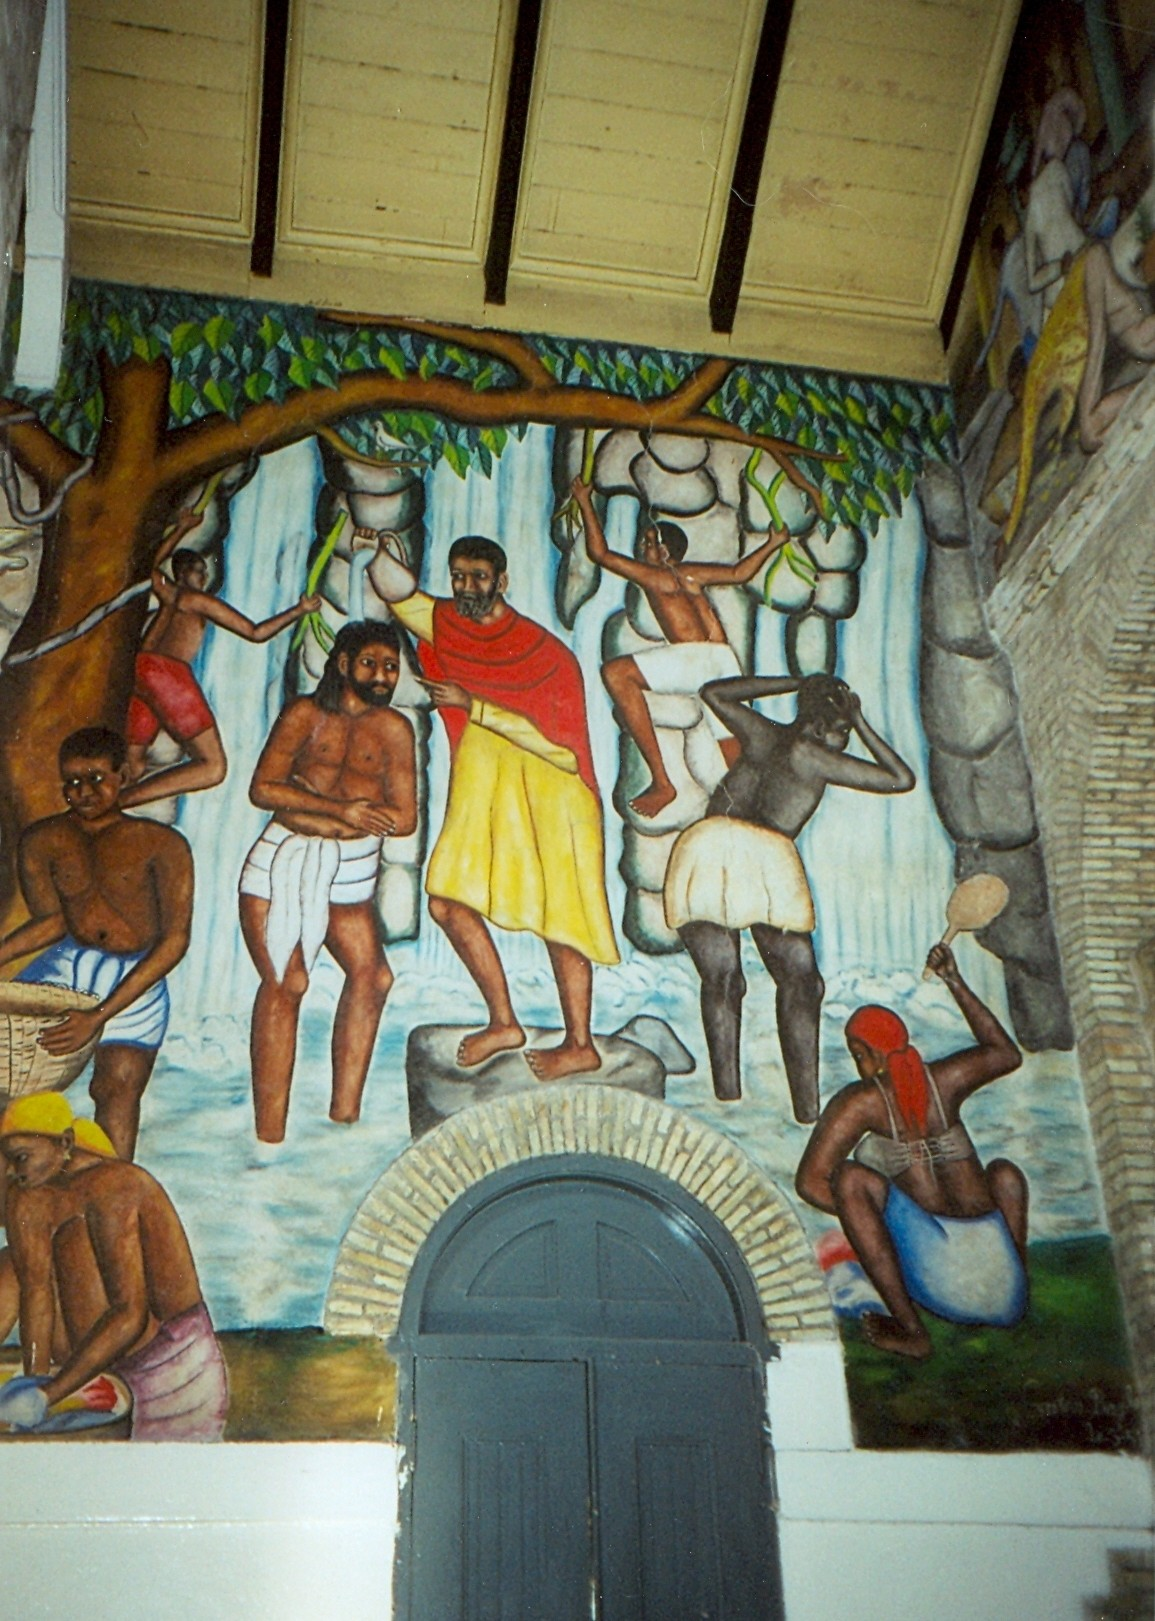 port au prince mature personals Explore the local attractions by le plaza hotel le plaza hotel this port-au-prince museum the national museum houses artifacts dating back to the time.